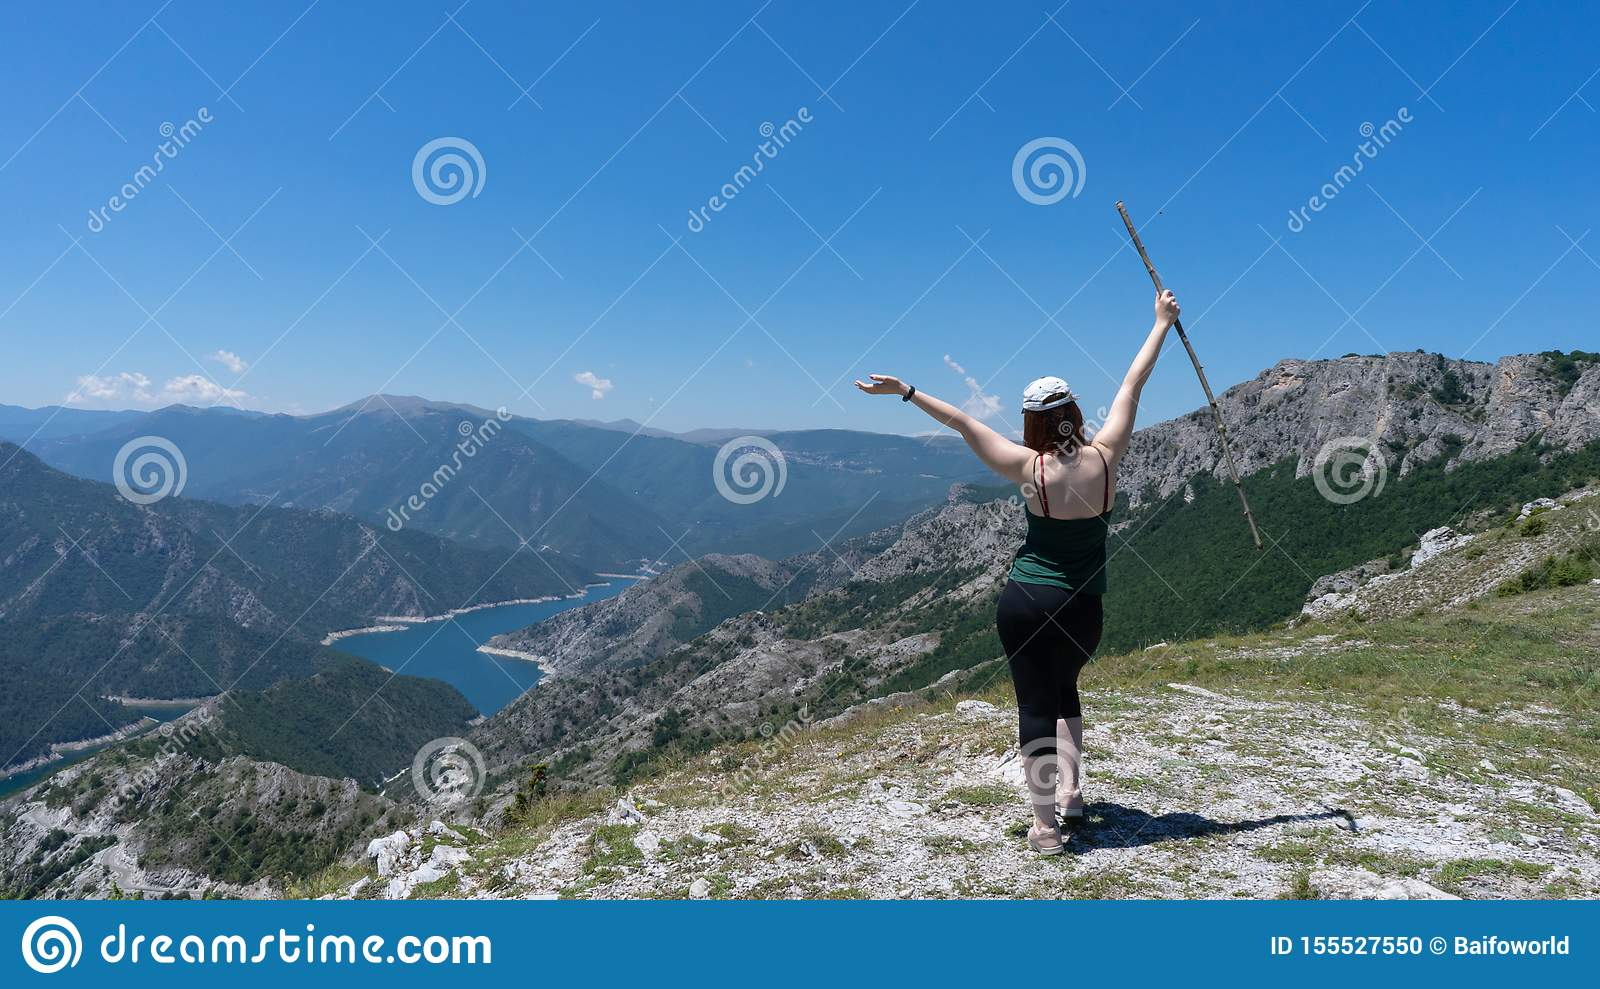 Brave girl conquering mountain peaks of mountains. Happy freedom hiker with hat and open arms Walking with wood stick, standing